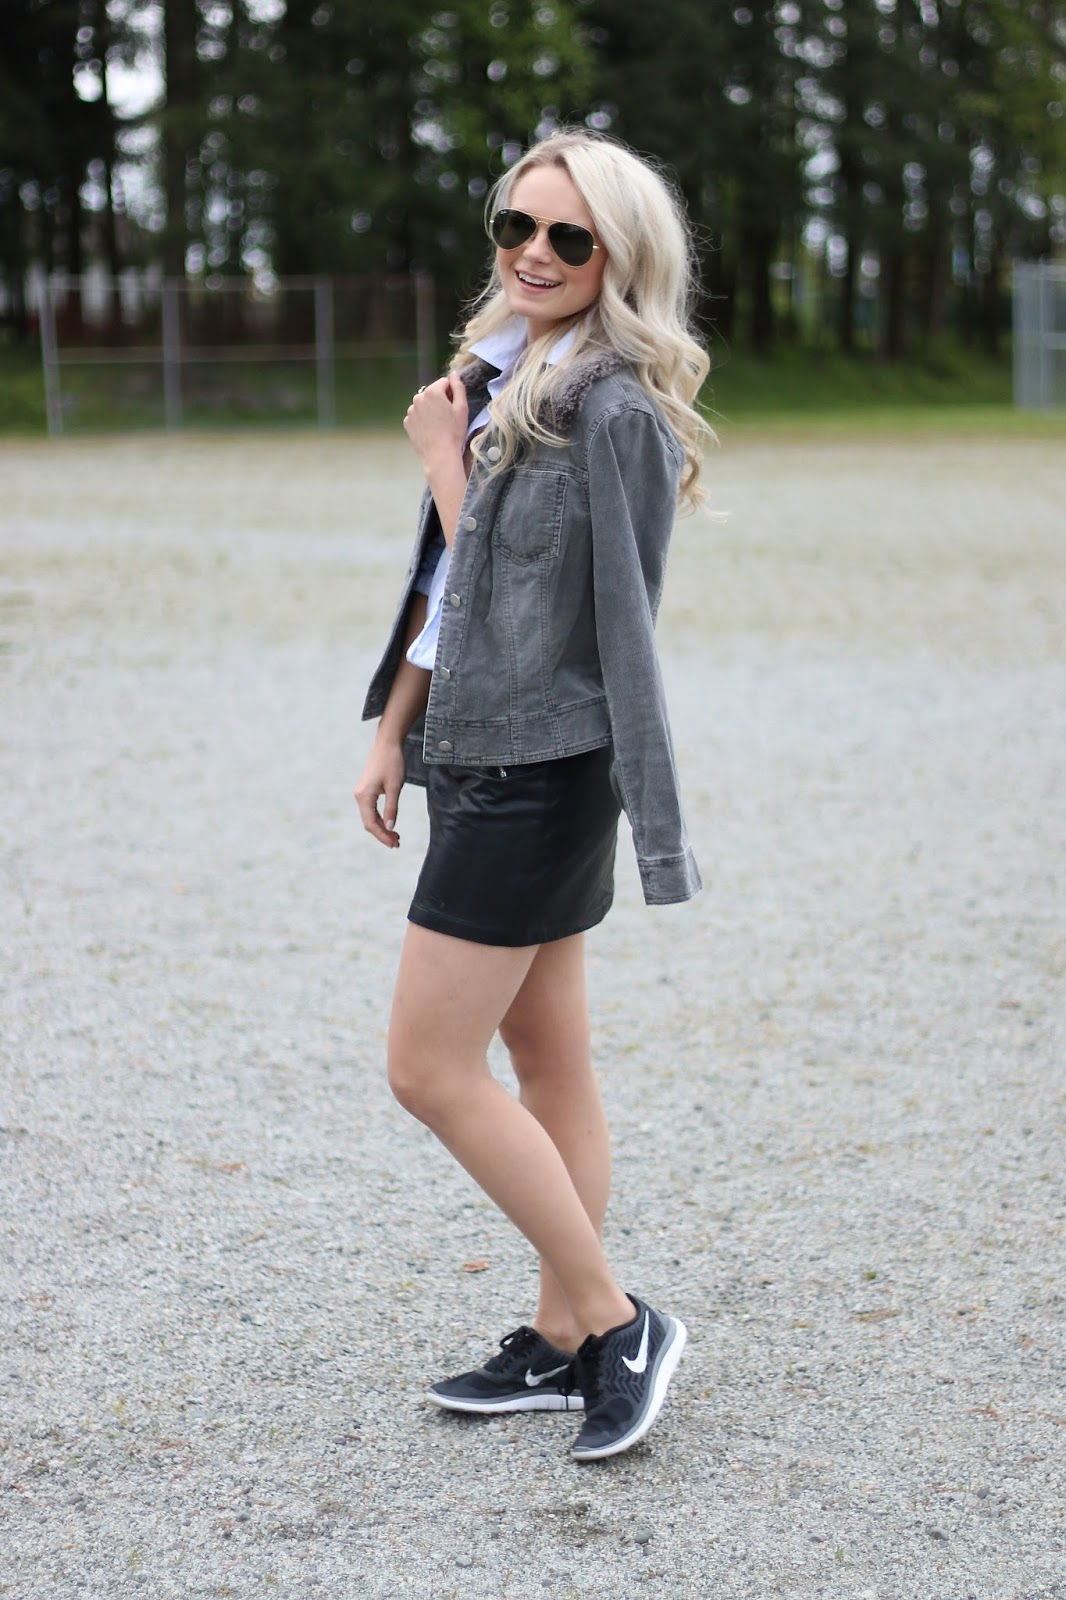 a fashion blogger models neutral fall fashions with a vintage denim jacket and nike shoes